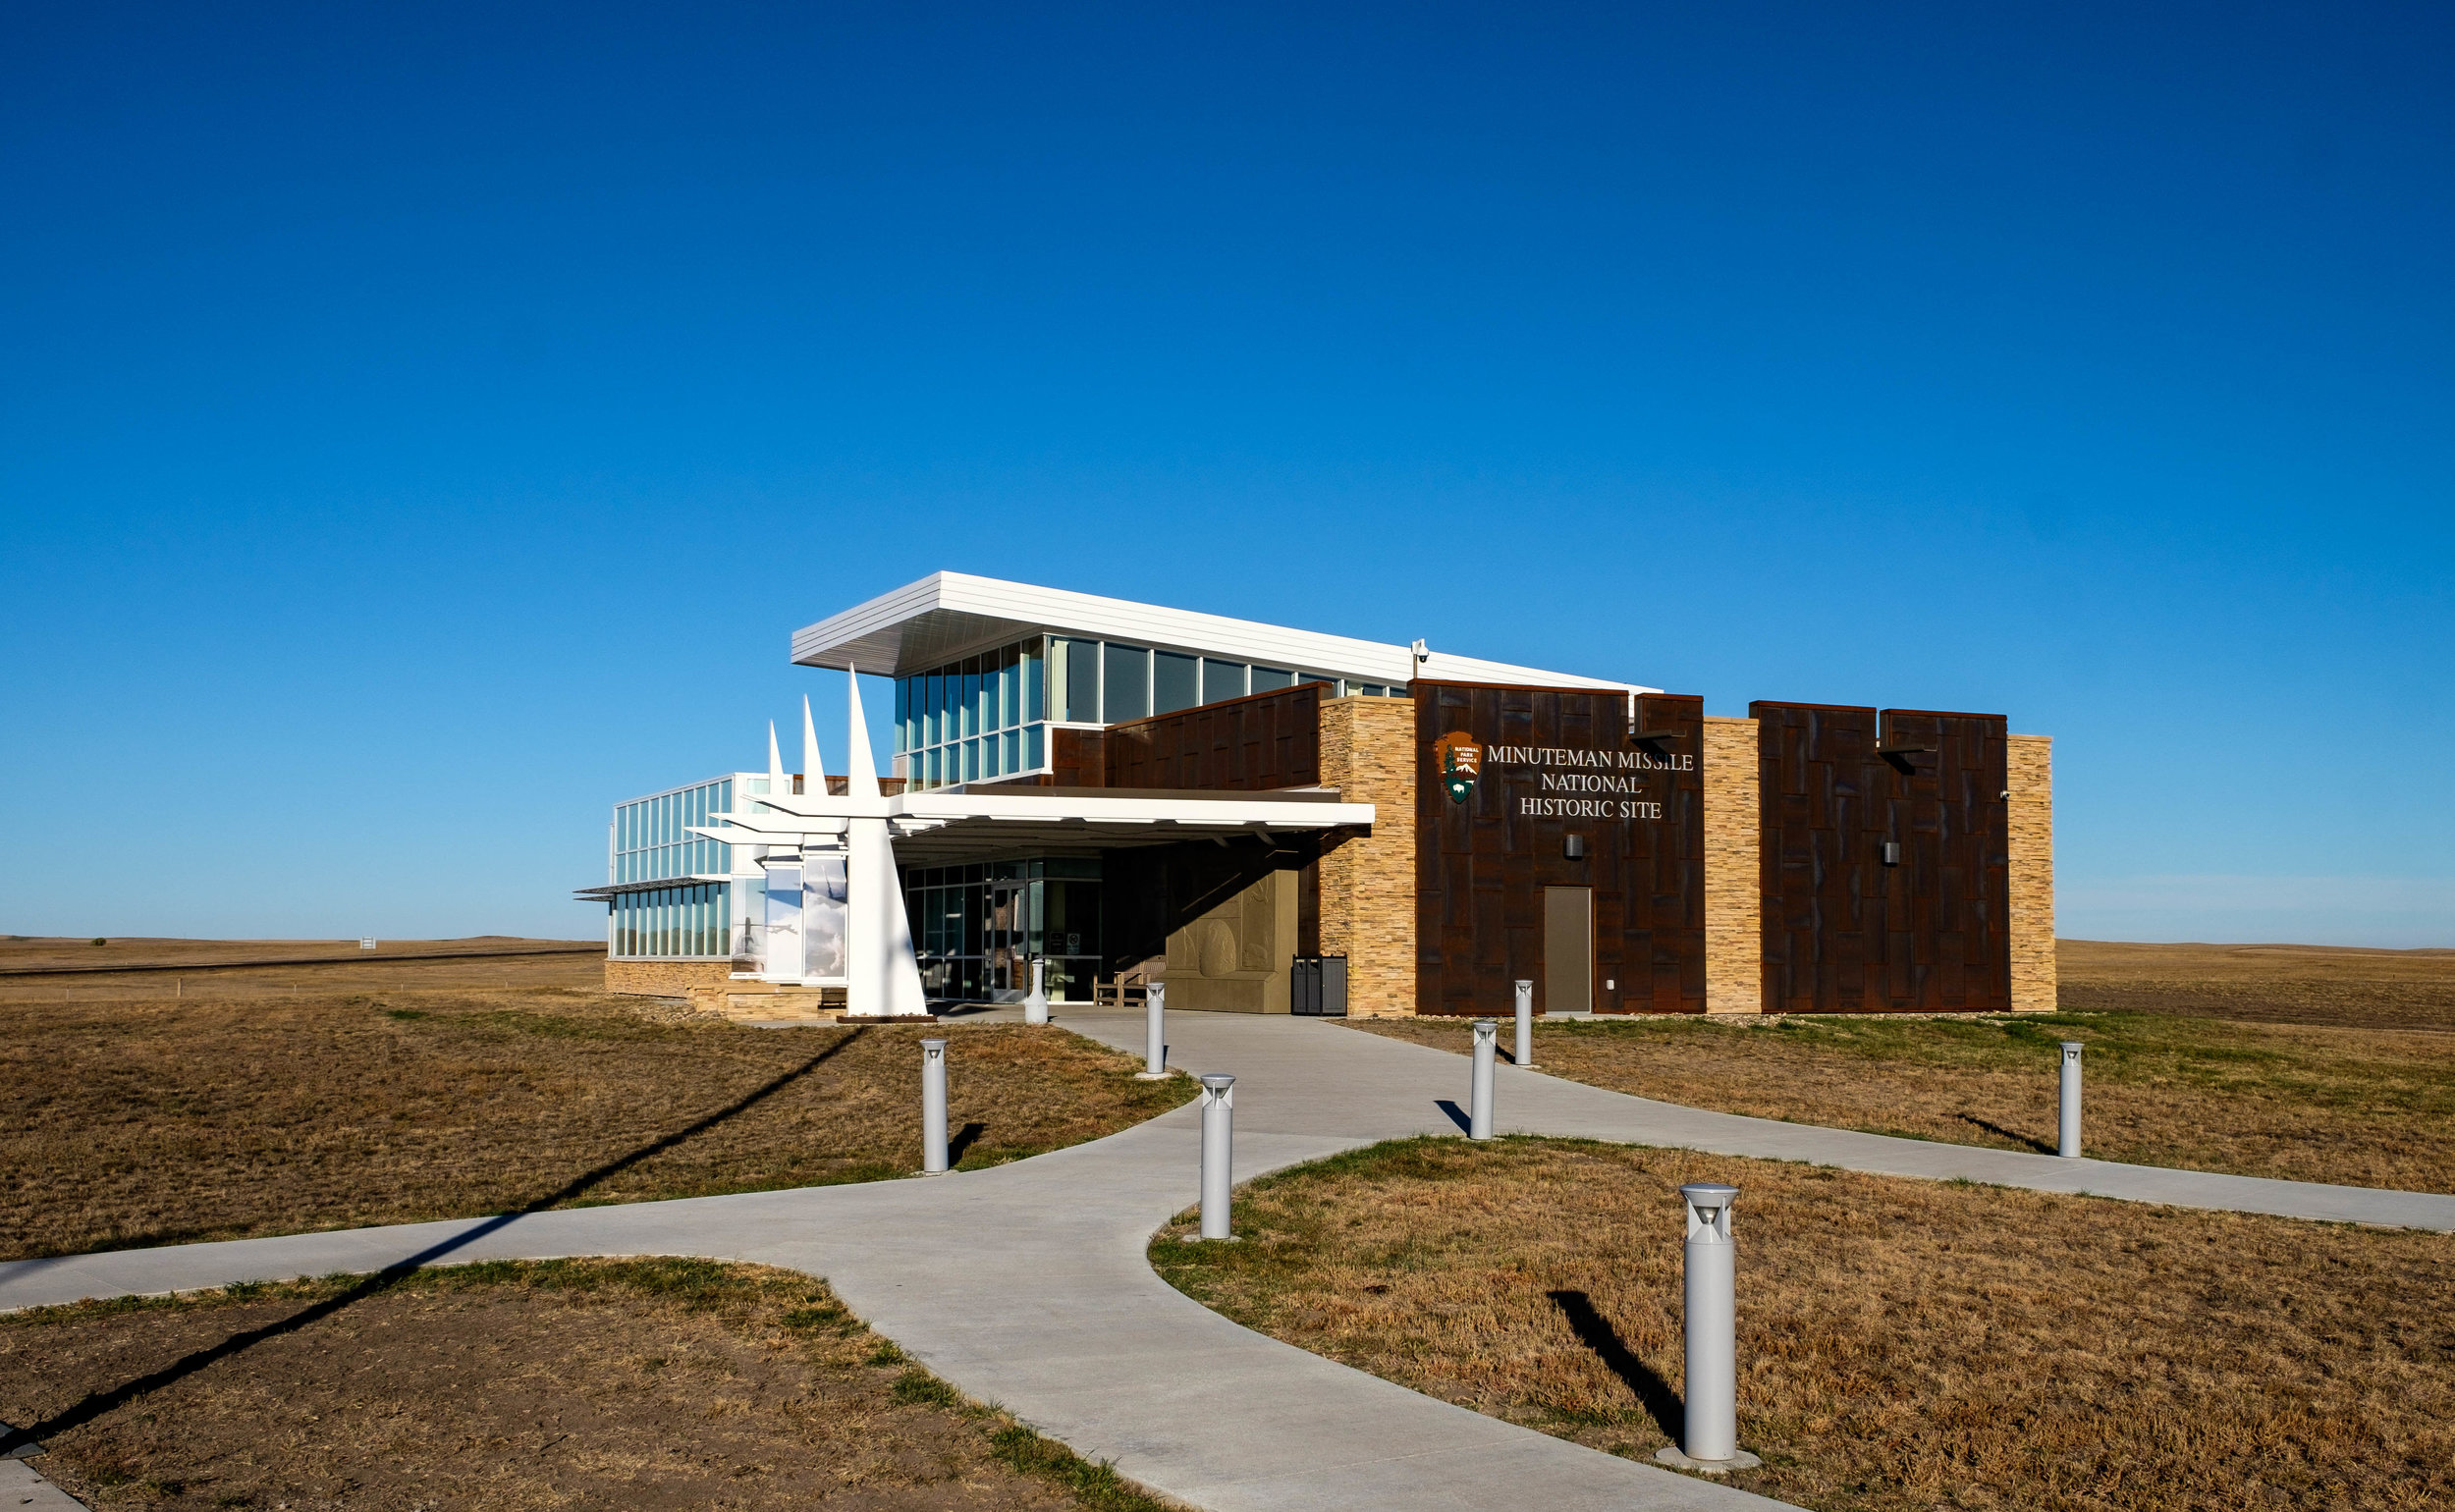 The Minuteman Missile National Historic Site Visitor Center. Head here to make reservations to see the Launch Control Facility and to learn more about the missile program from park rangers.